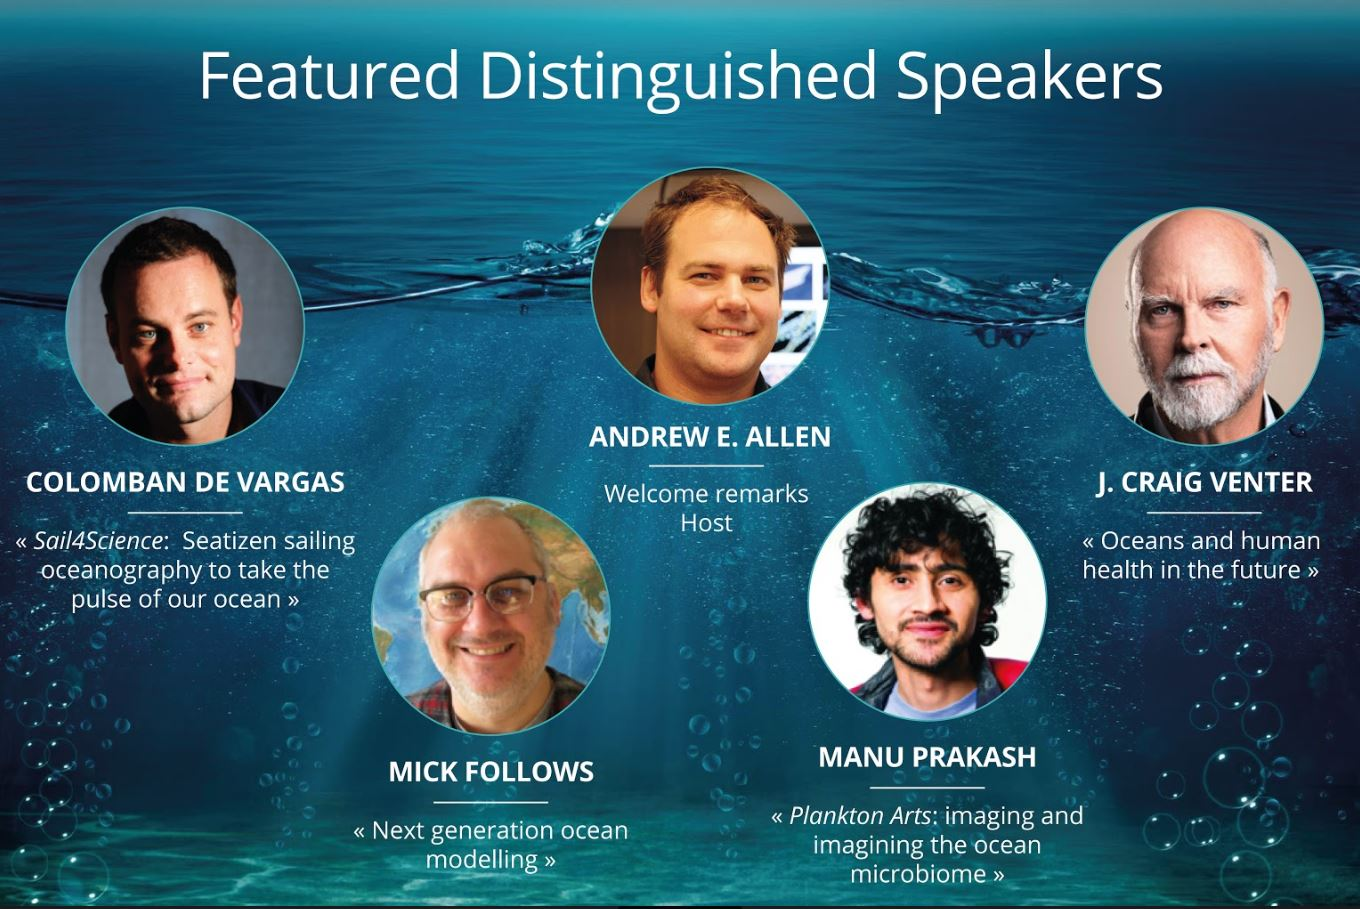 Featured Distinguished Speakers